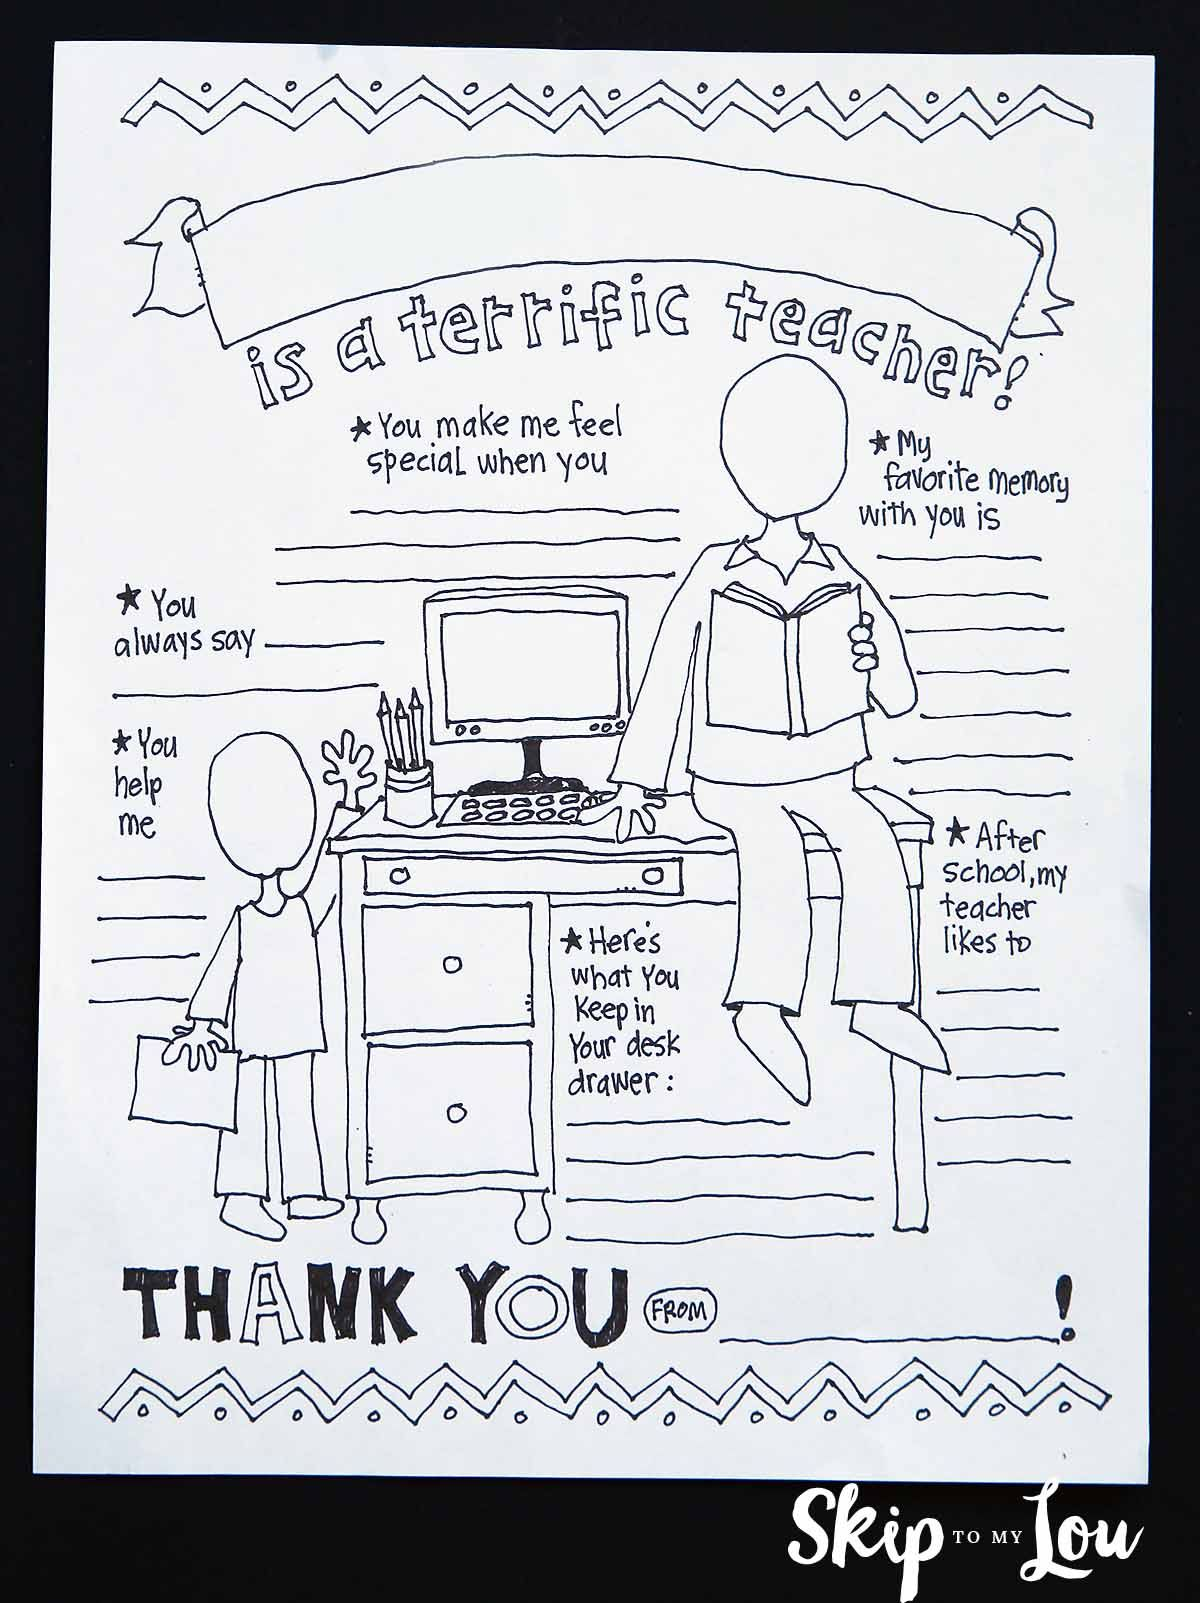 Teacher Coloring Sheet With Images